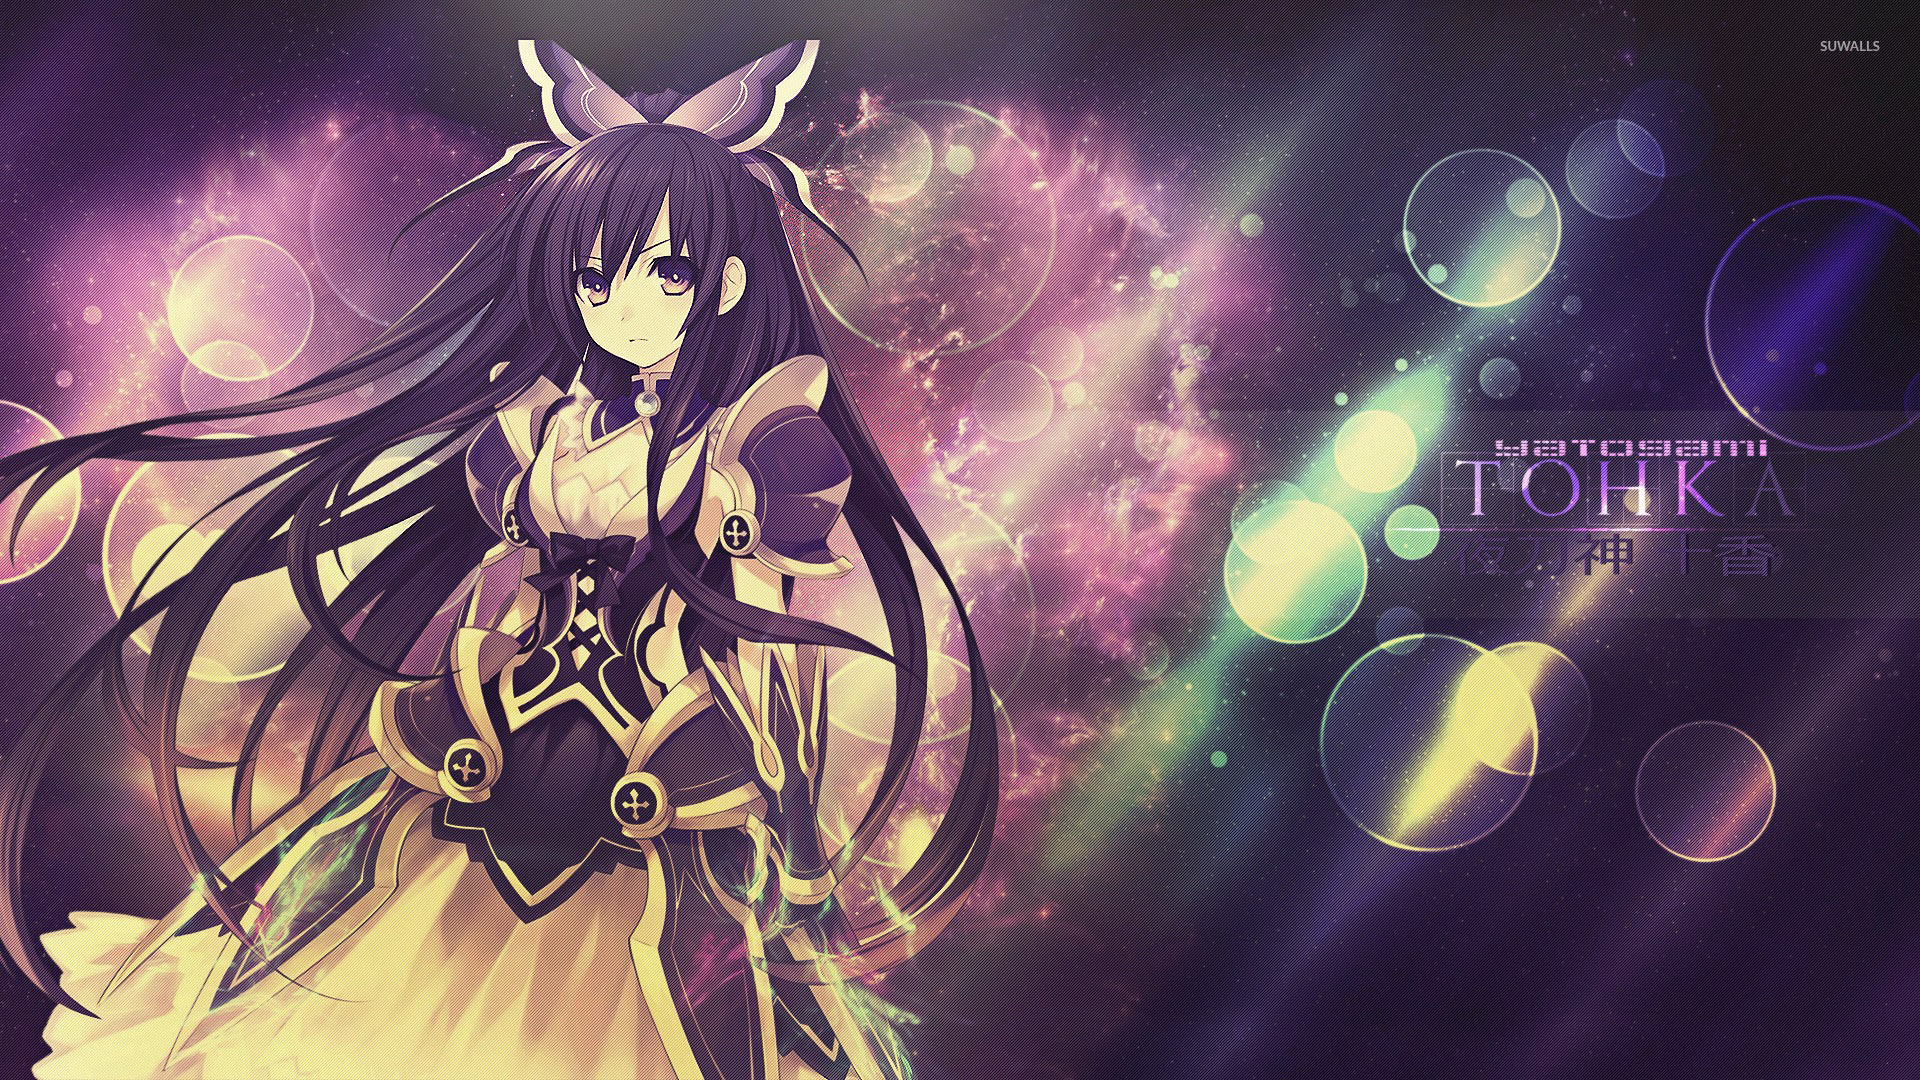 Tohka Yatogami   Date A Live wallpaper   Anime wallpapers   30332 1366x768